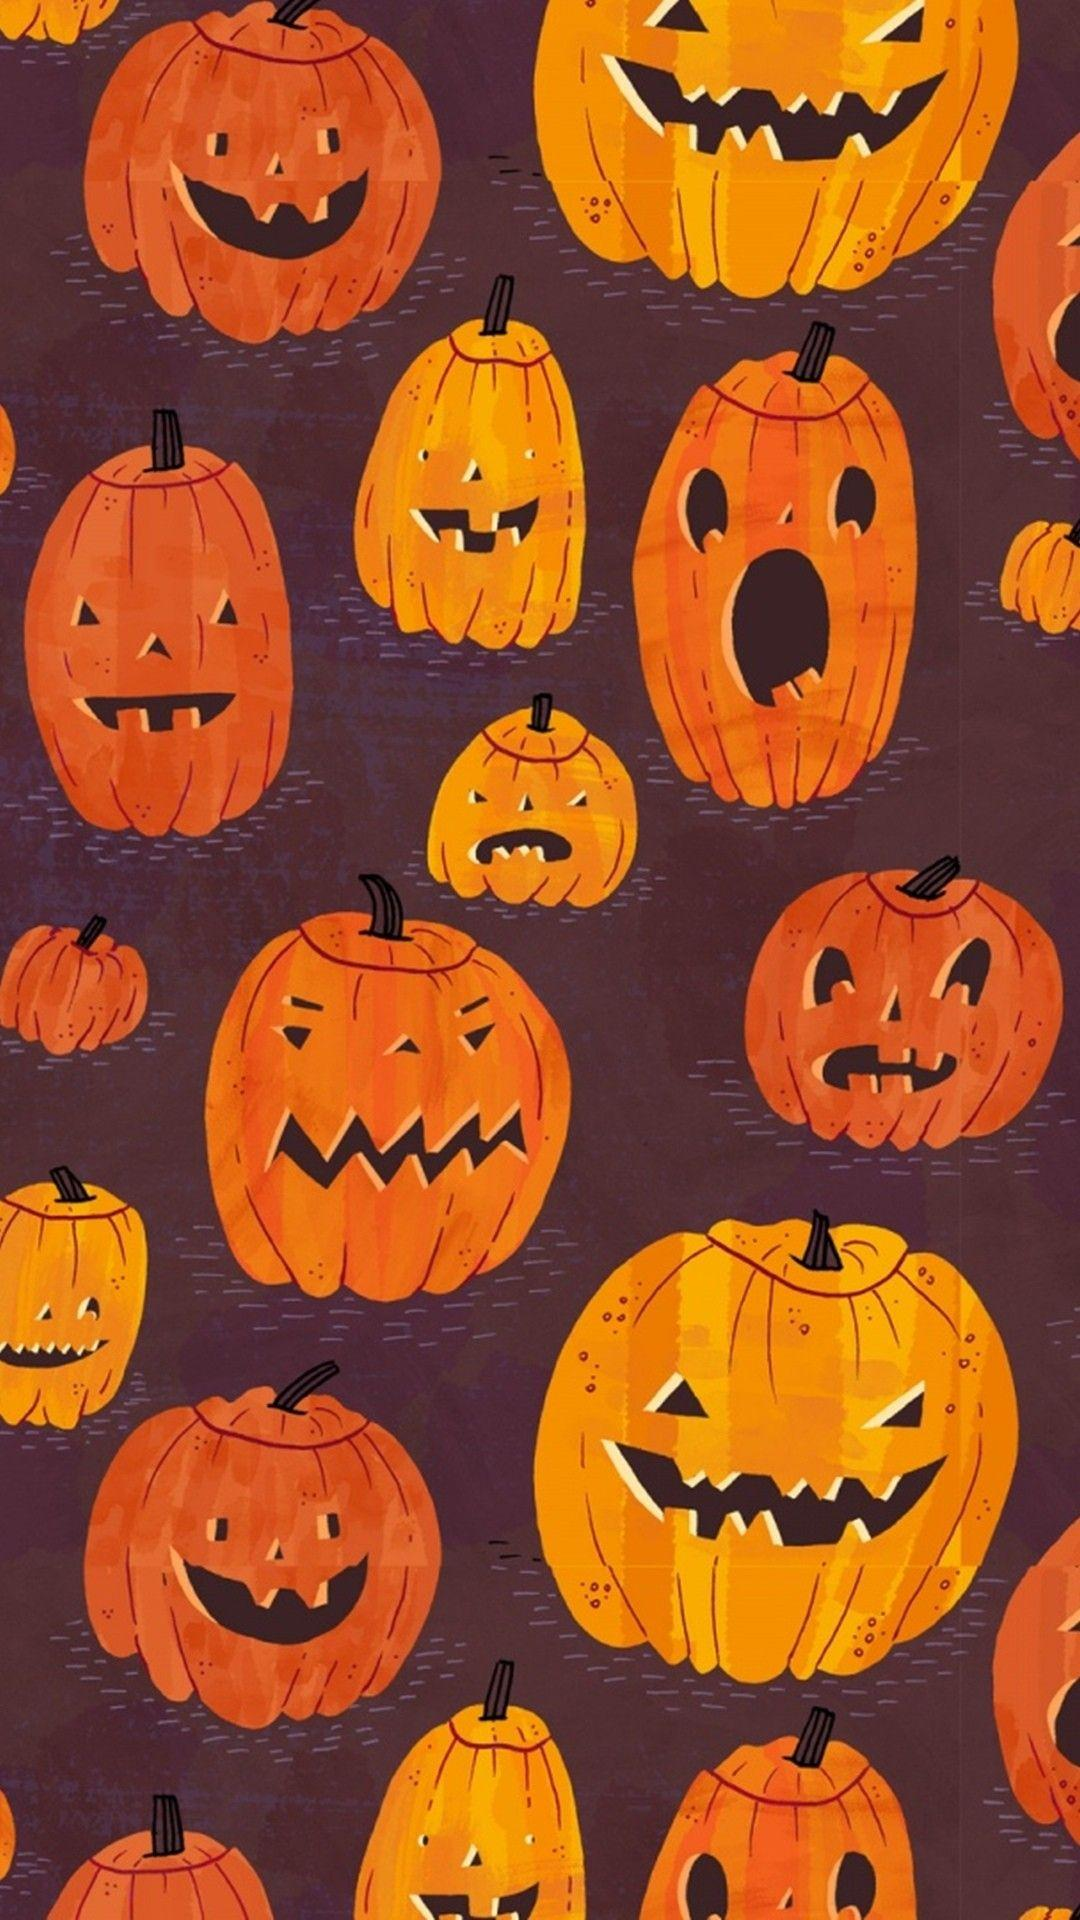 Cute Pumpkins Wallpapers - Wallpaper Cave